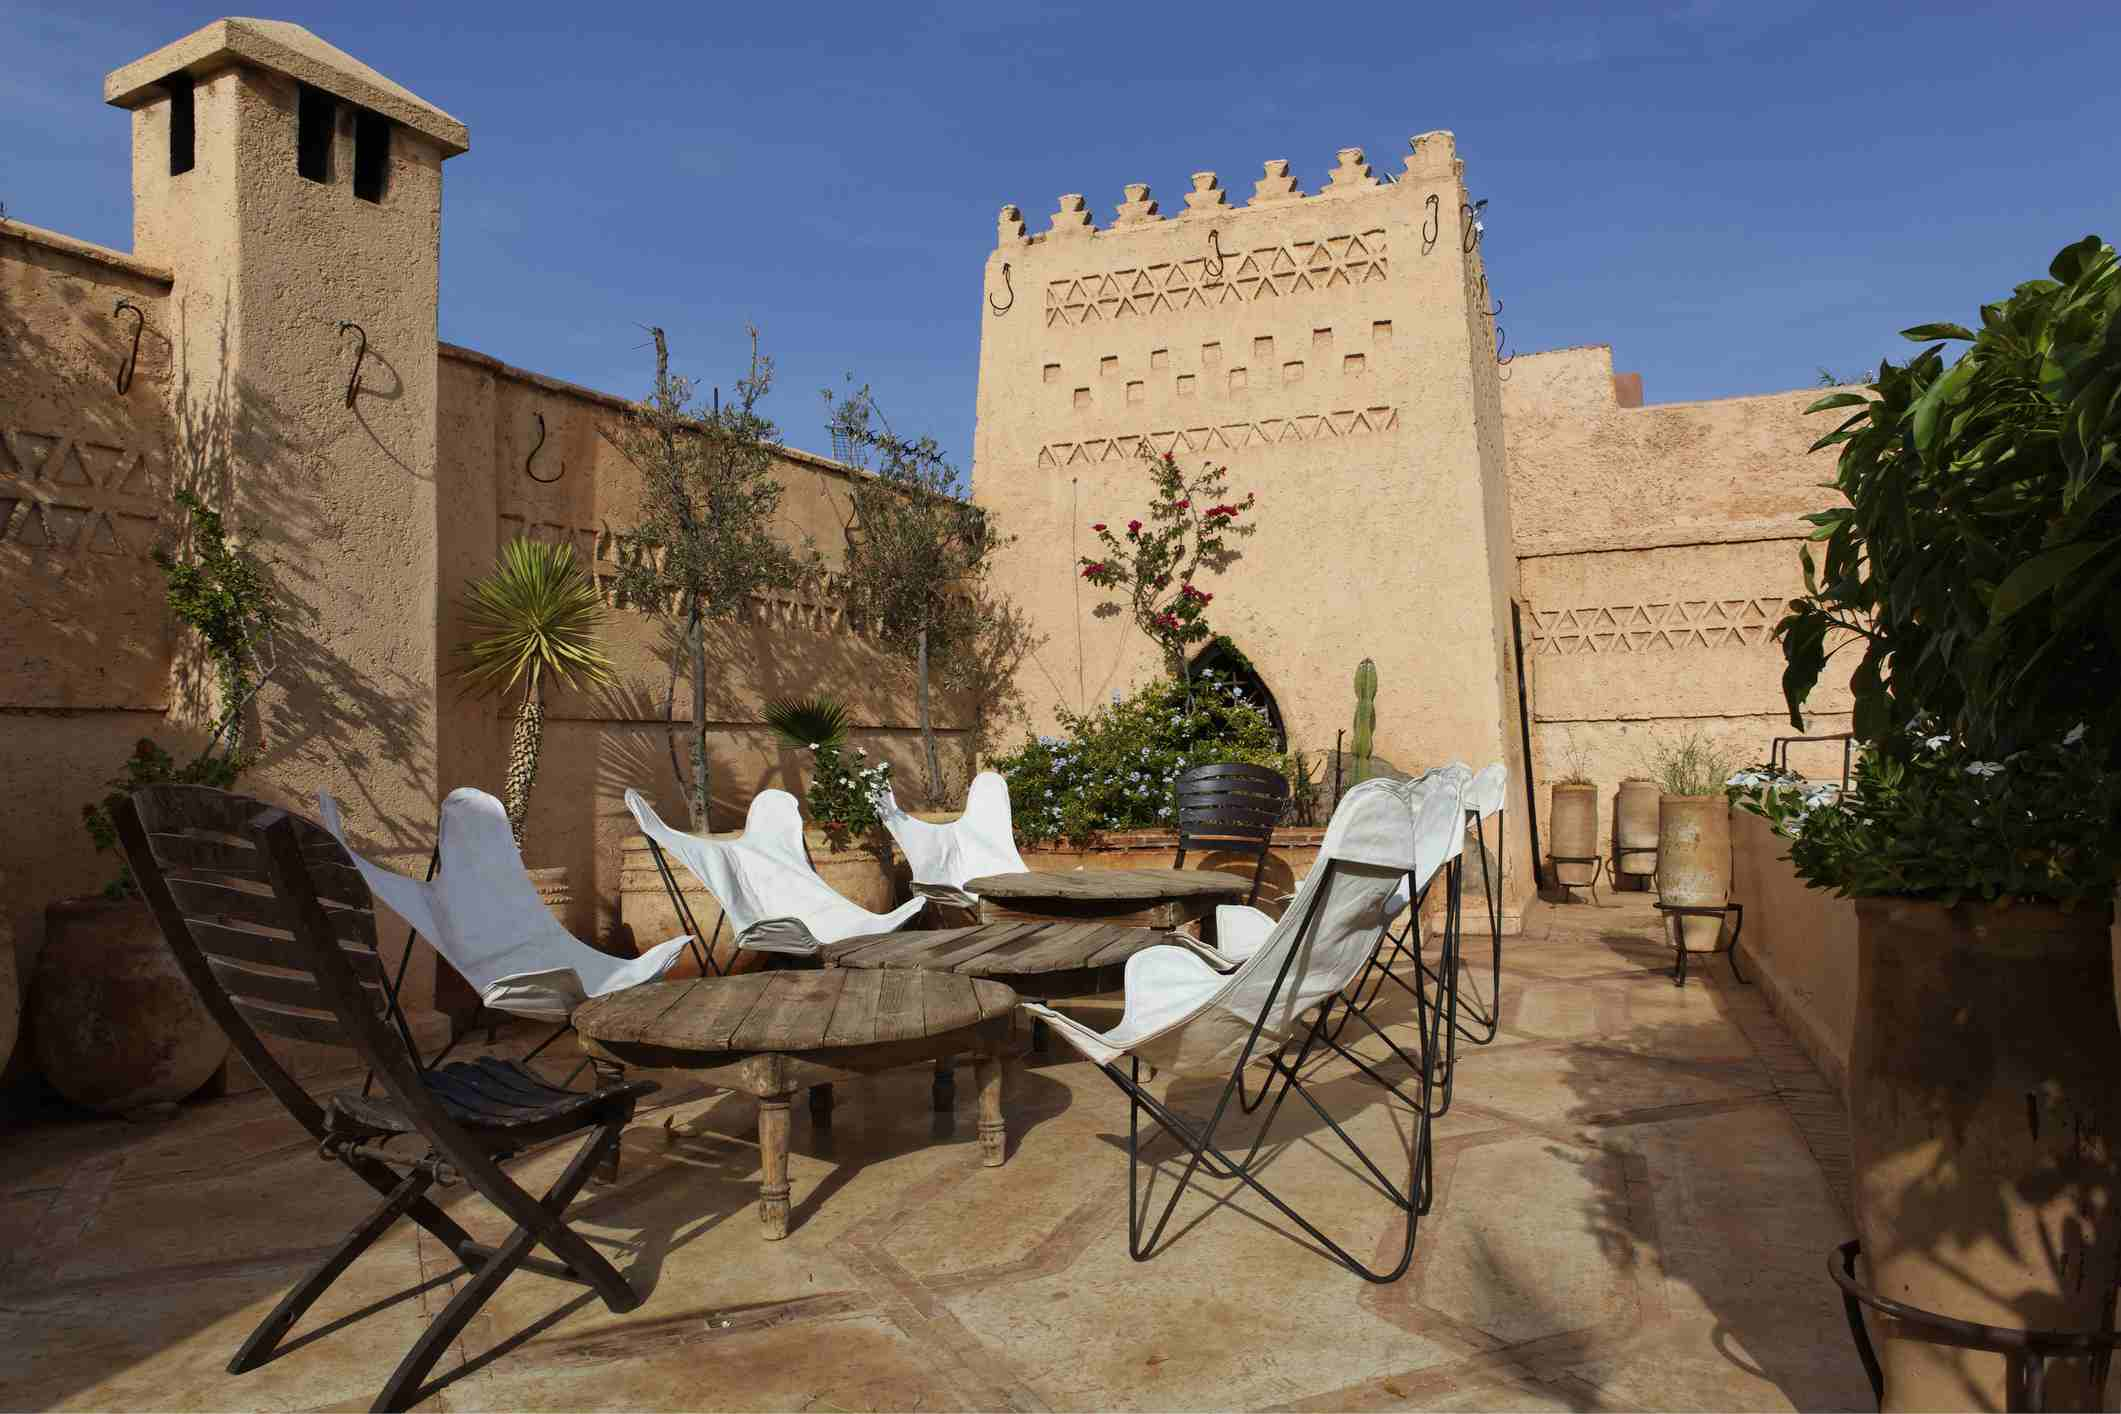 Rooftop terrace of a riad in Morocco